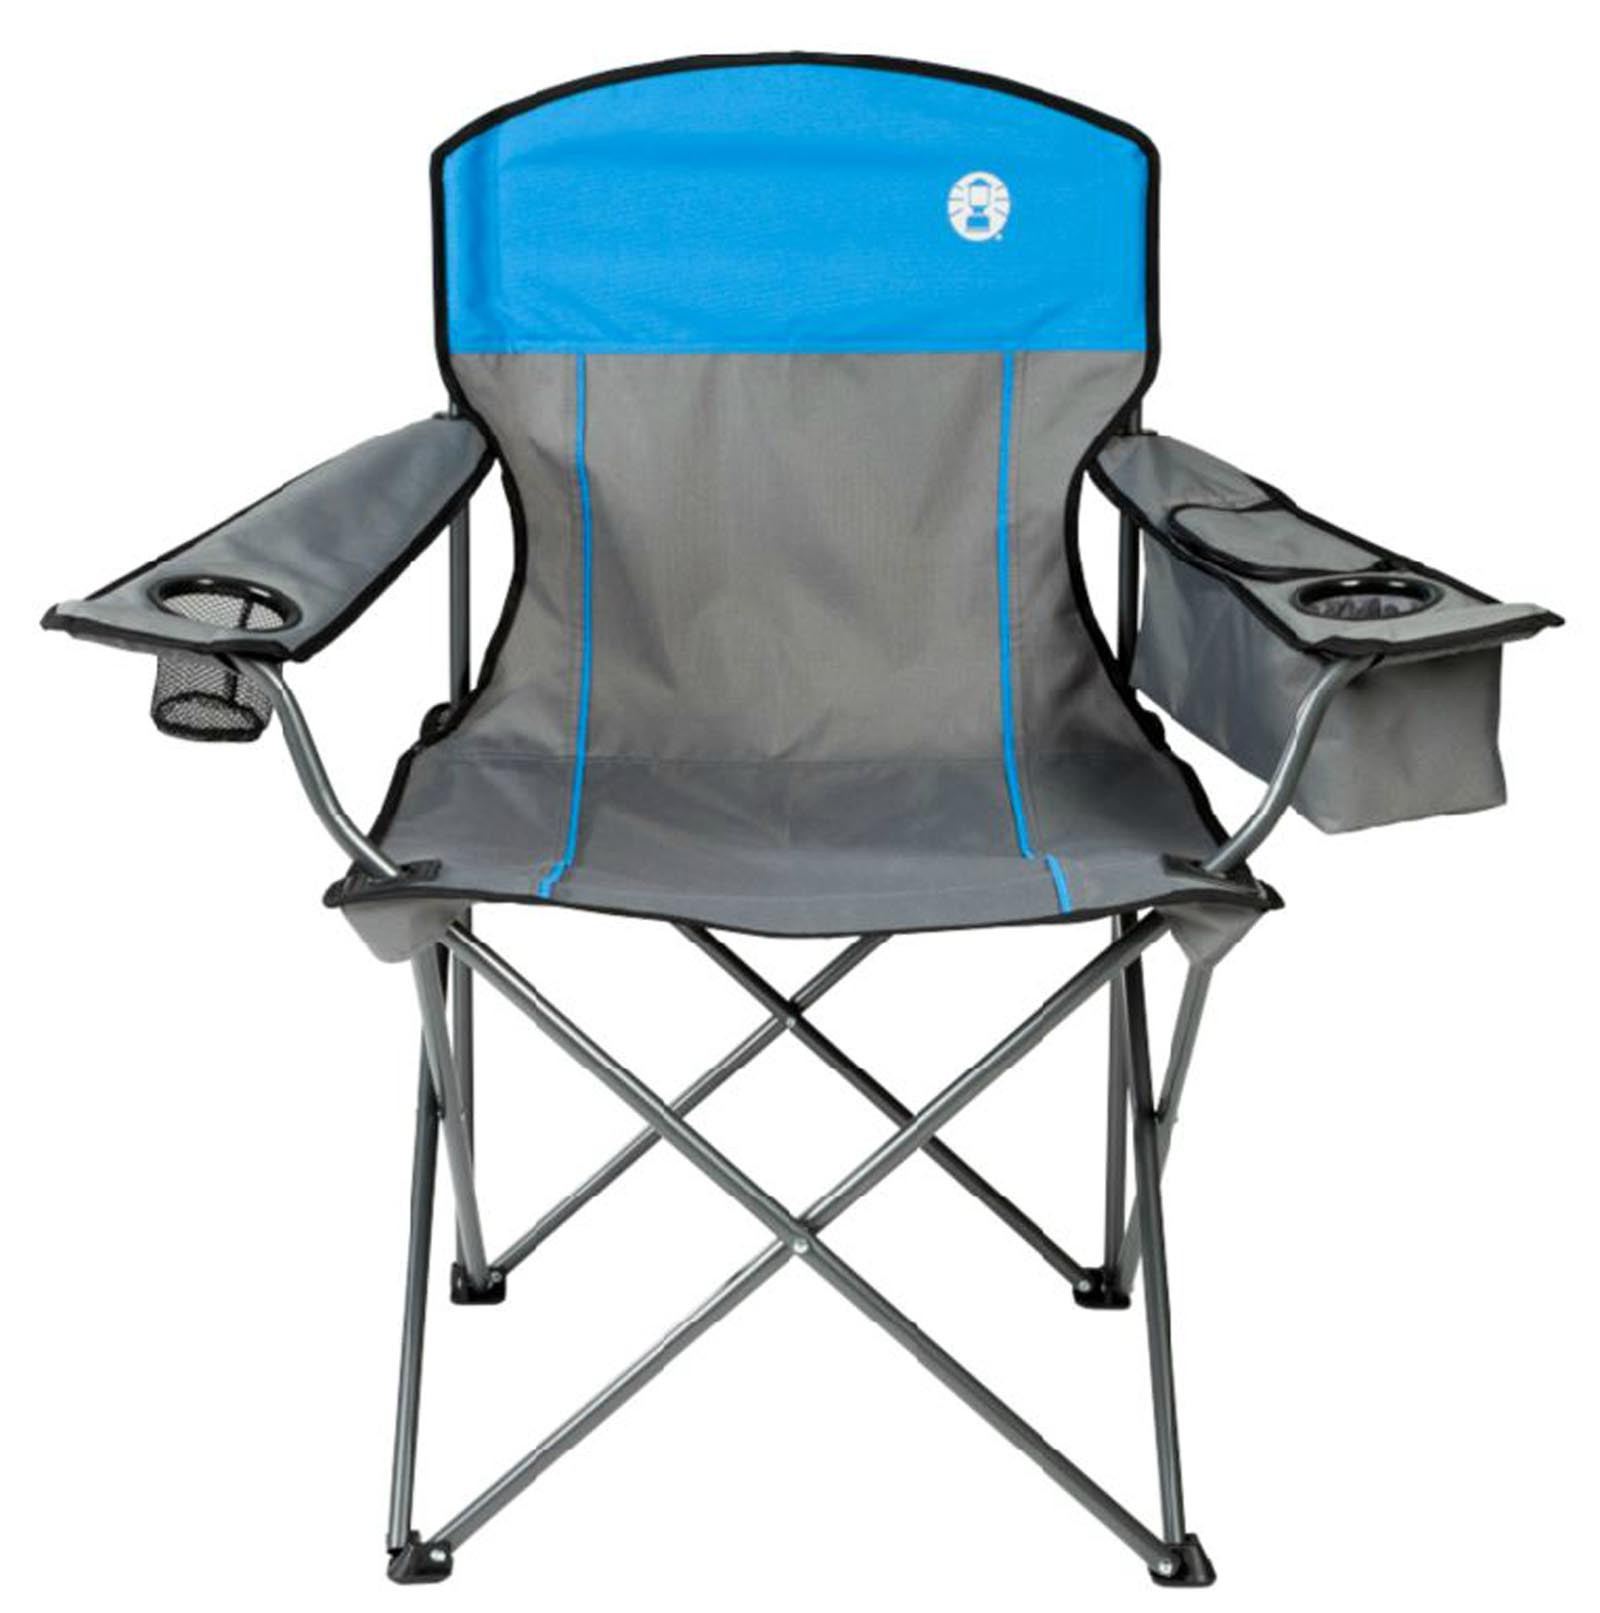 Best ideas about Coleman Oversized Quad Chair With Cooler . Save or Pin COLEMAN Camping Outdoor Oversized Quad Chair w Cooler Now.